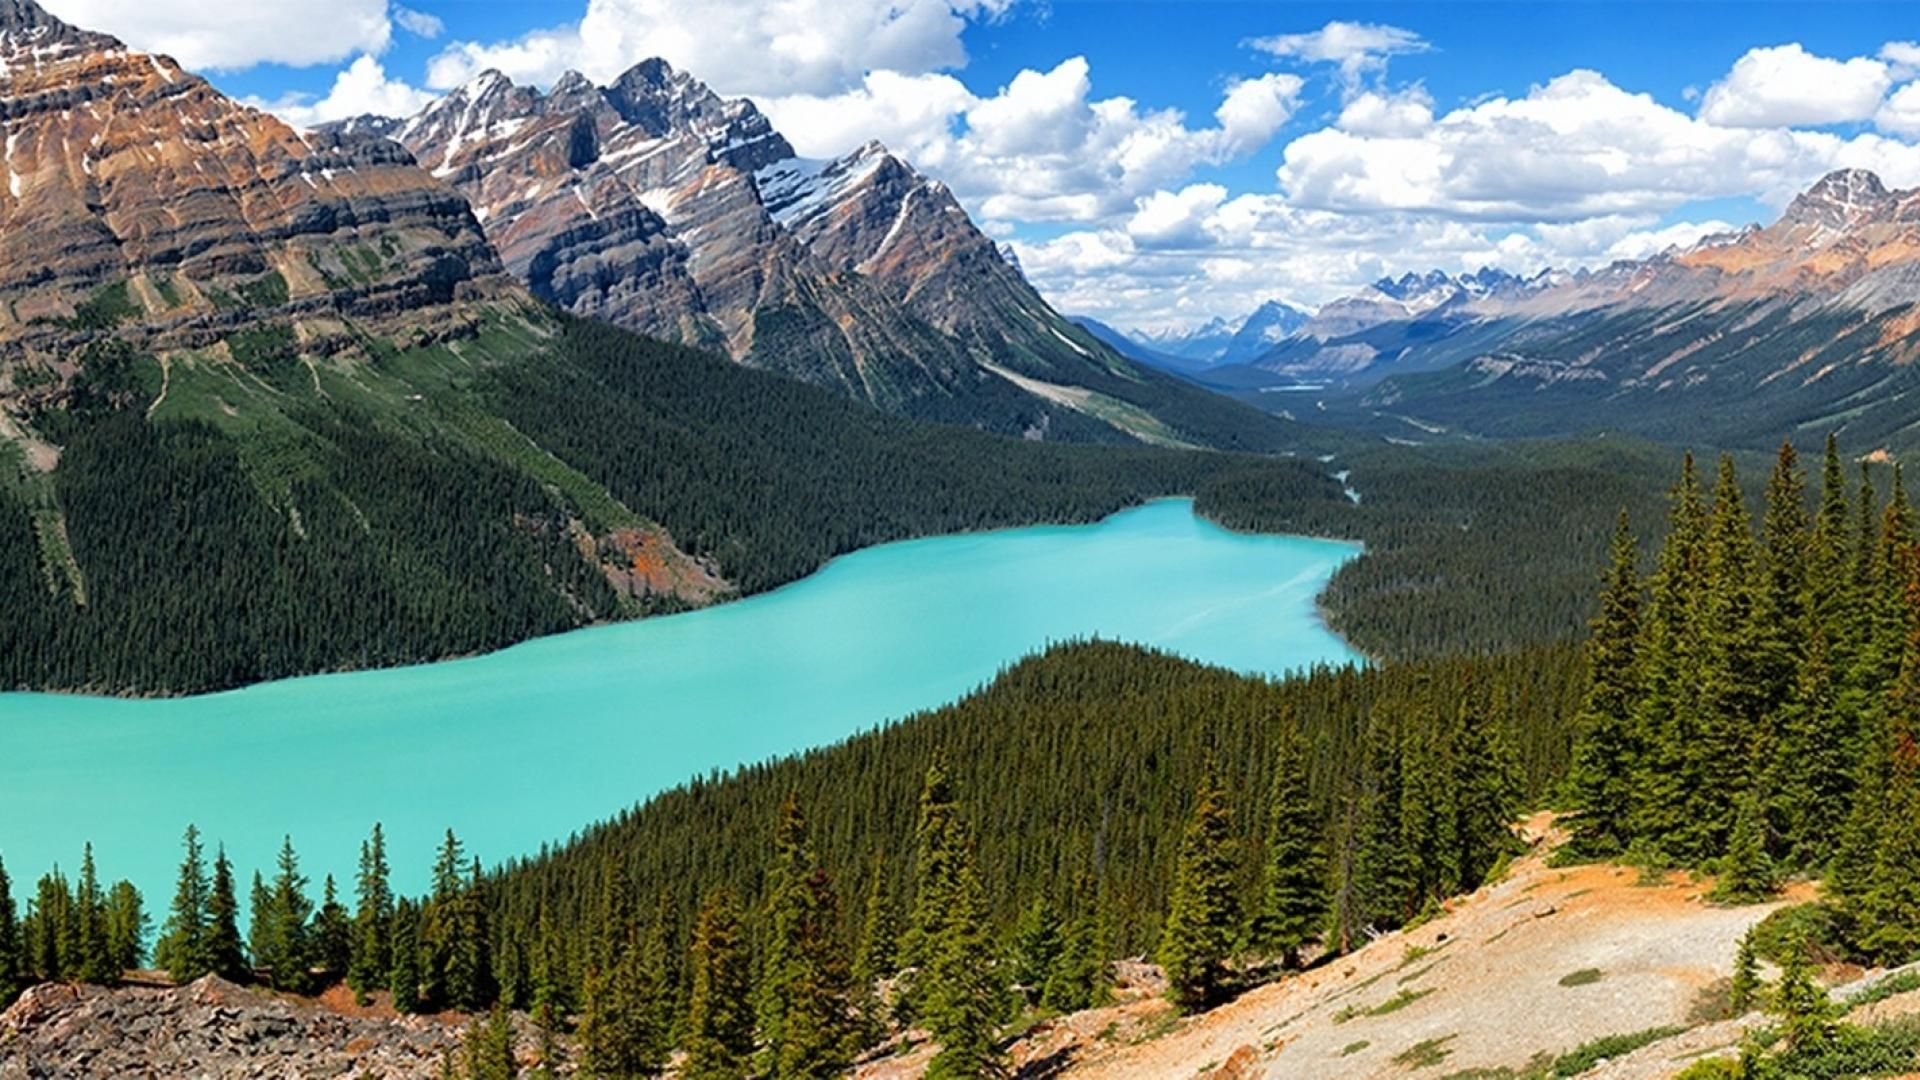 Rocky Mountain picture hd